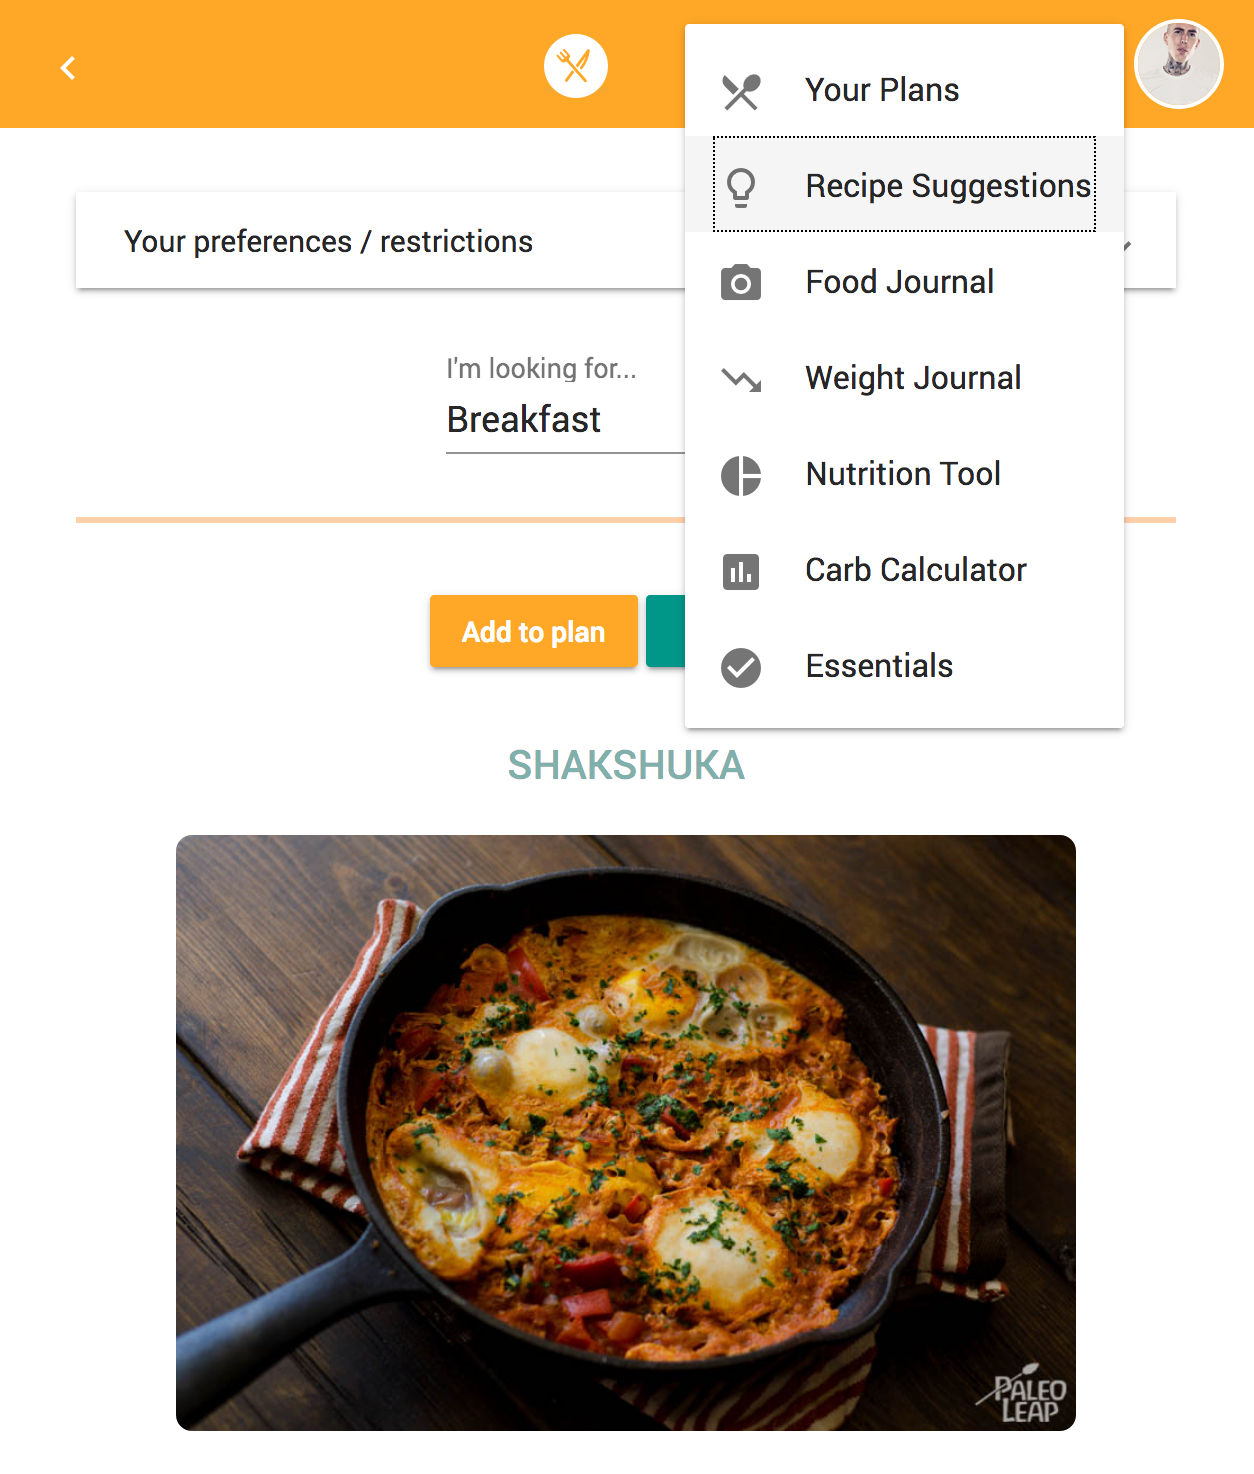 Paleo leap meal planner getting started adding and finding meals forumfinder Gallery